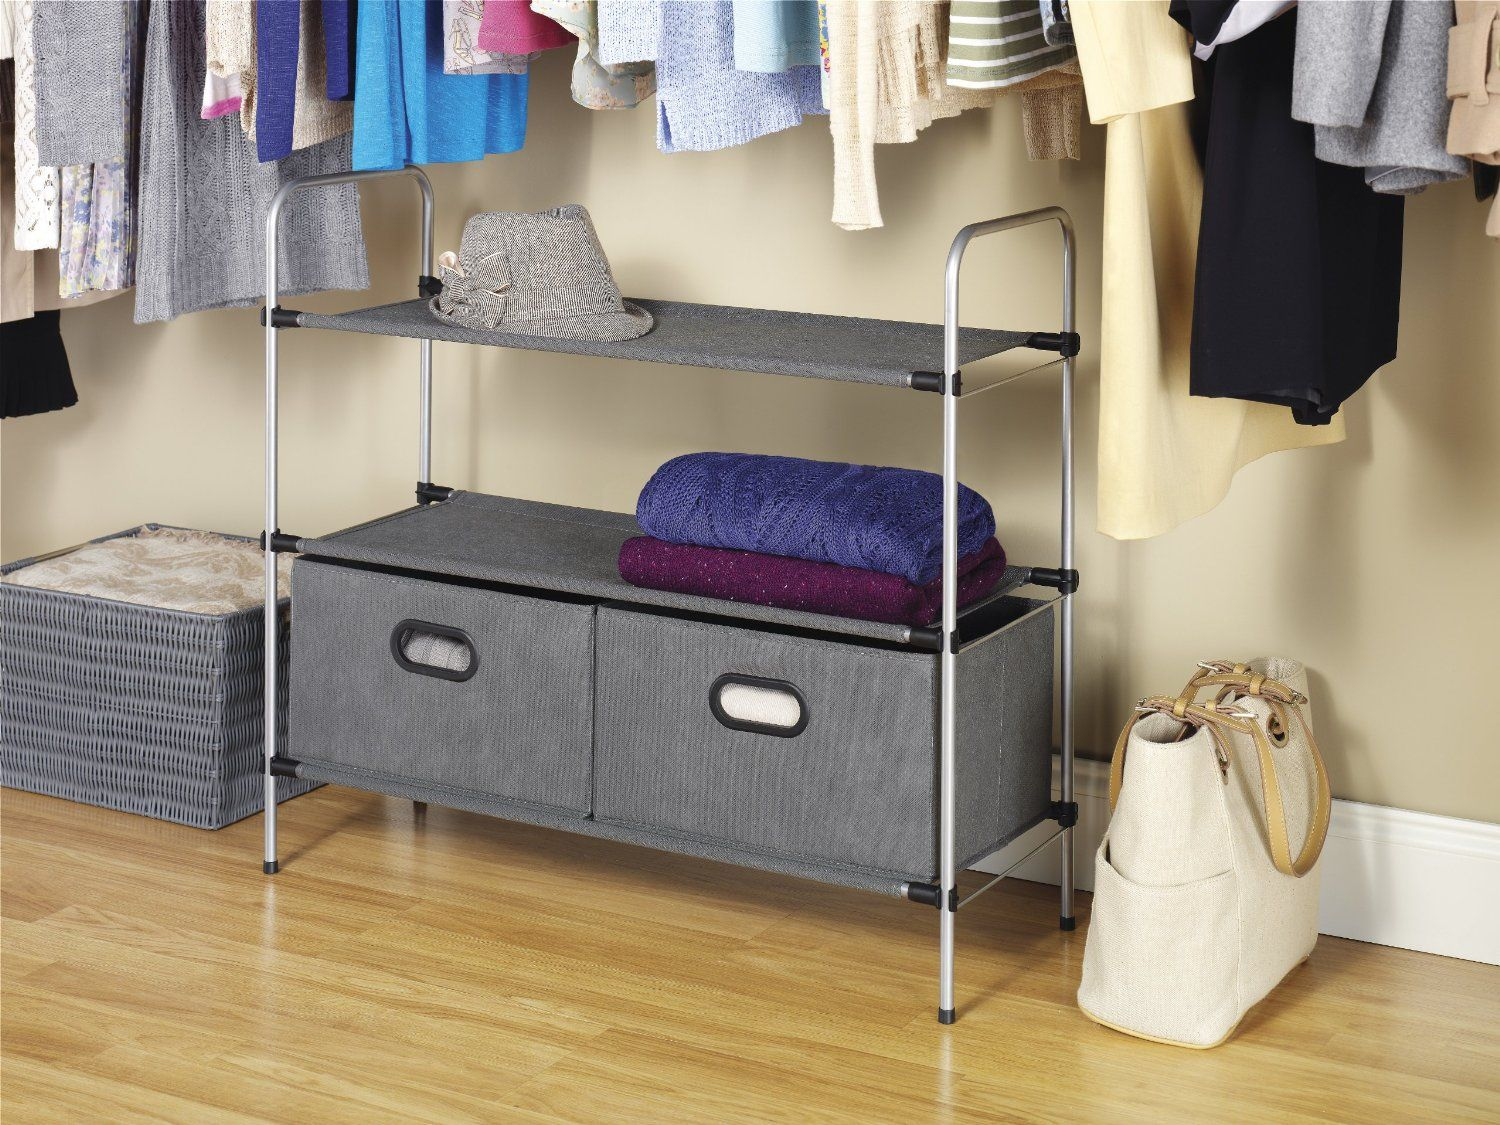 Wonderful Sophisticate By Whitmor Silver U0026 Grey Closet Shelves U0026 Drawers On HauteLook